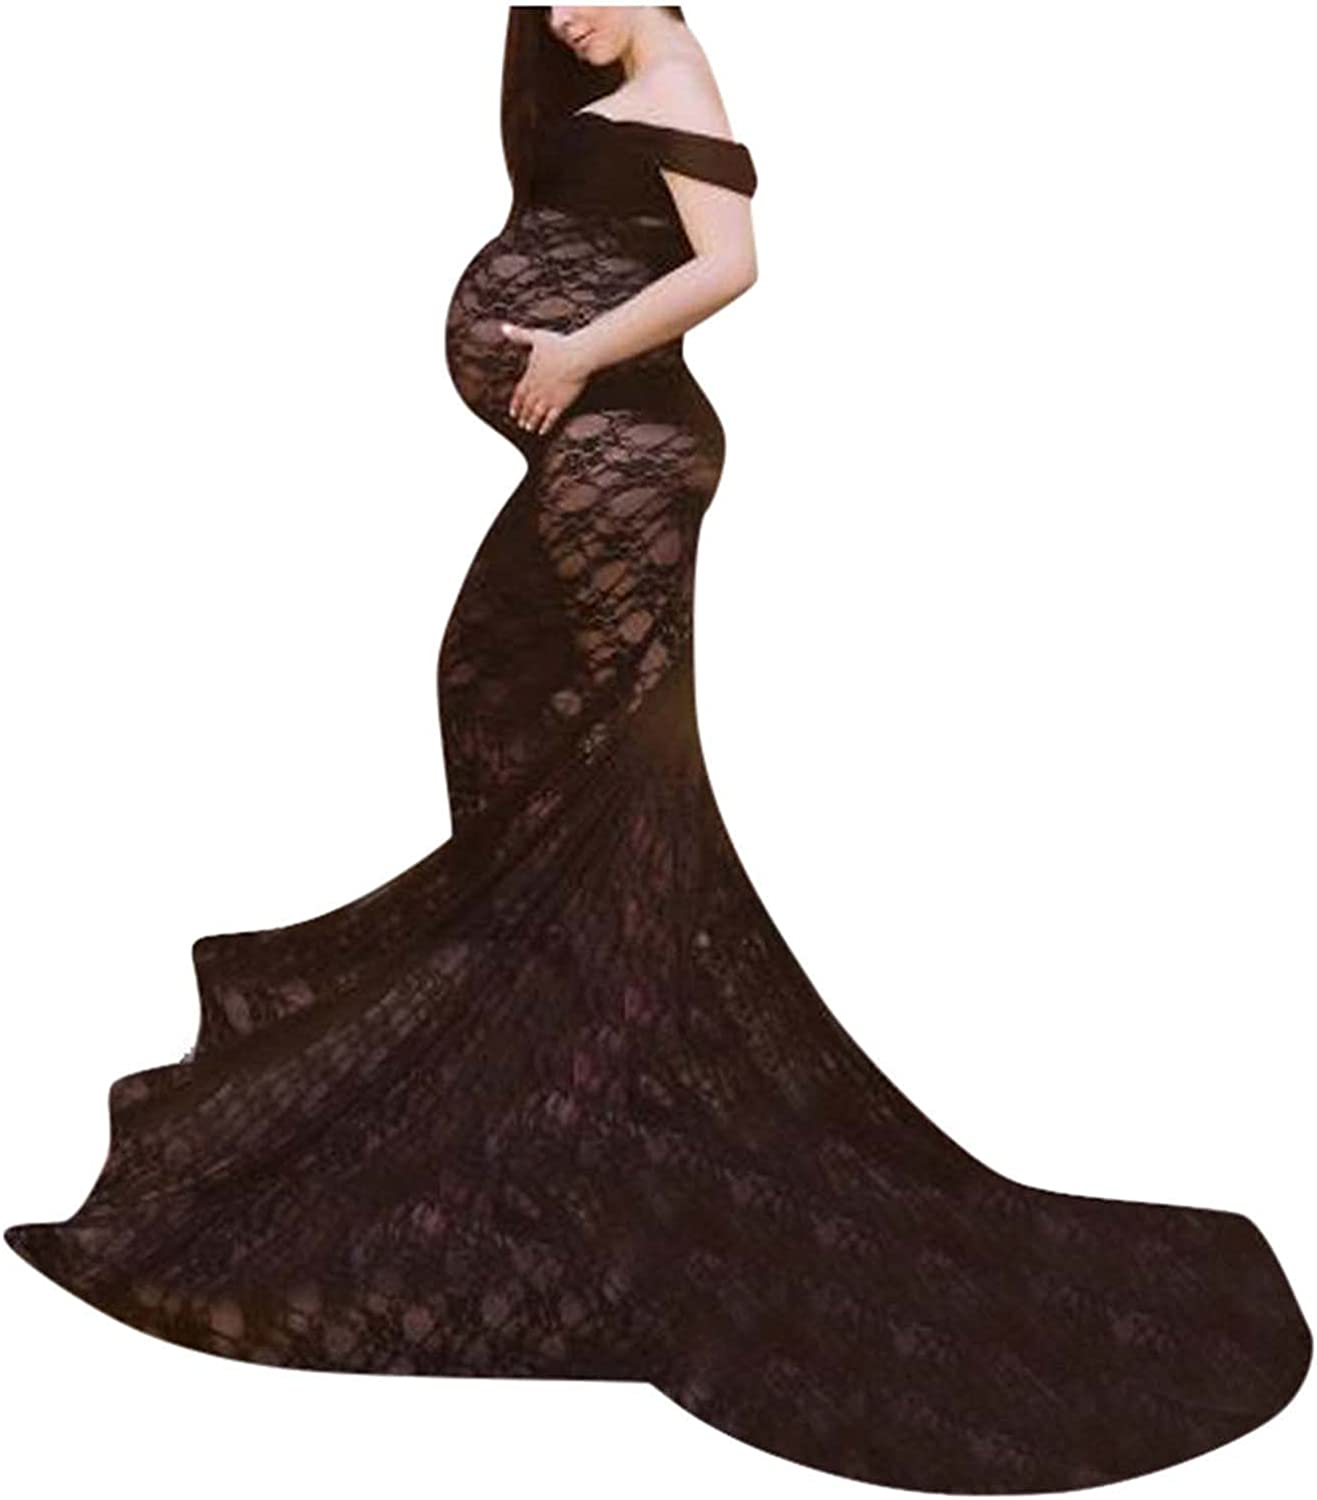 GOODTRADE8 Maternity Clothes Women O Props Photography Manufacturer regenerated Popularity product Pregnants